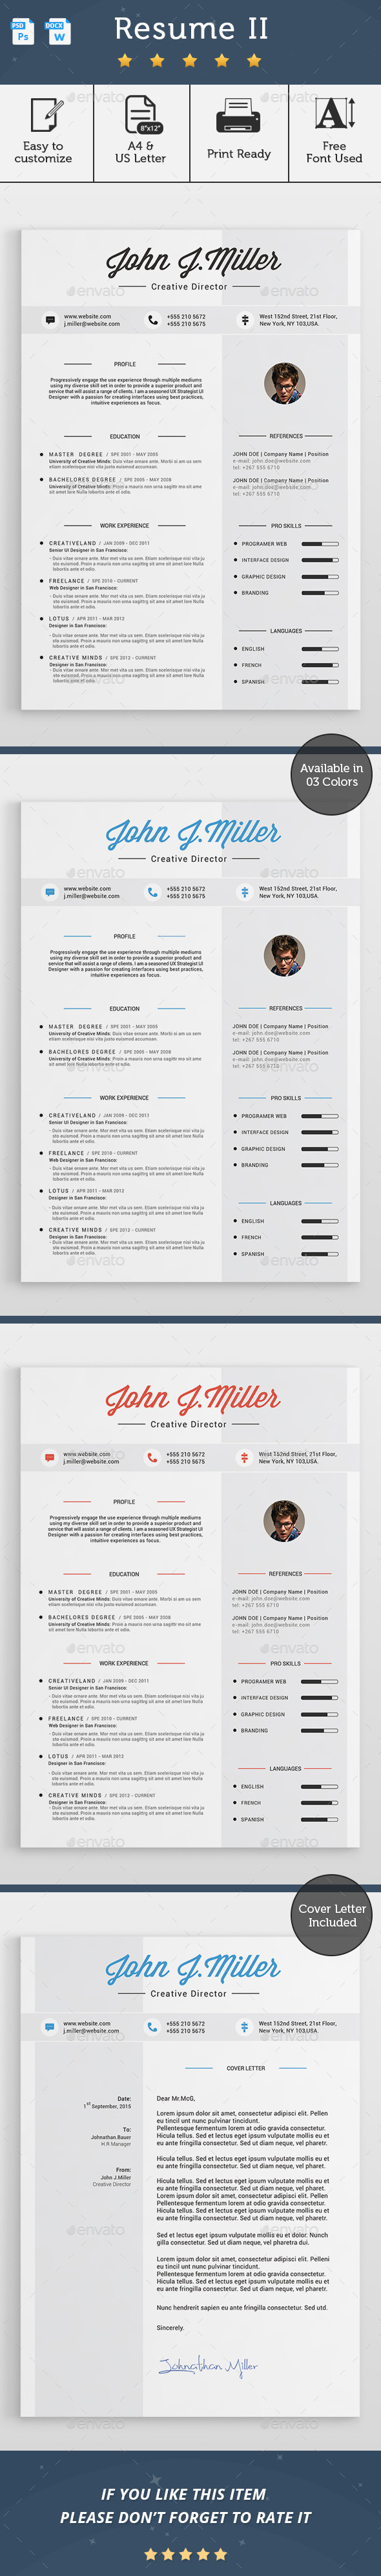 GraphicRiver Resume II 11528399